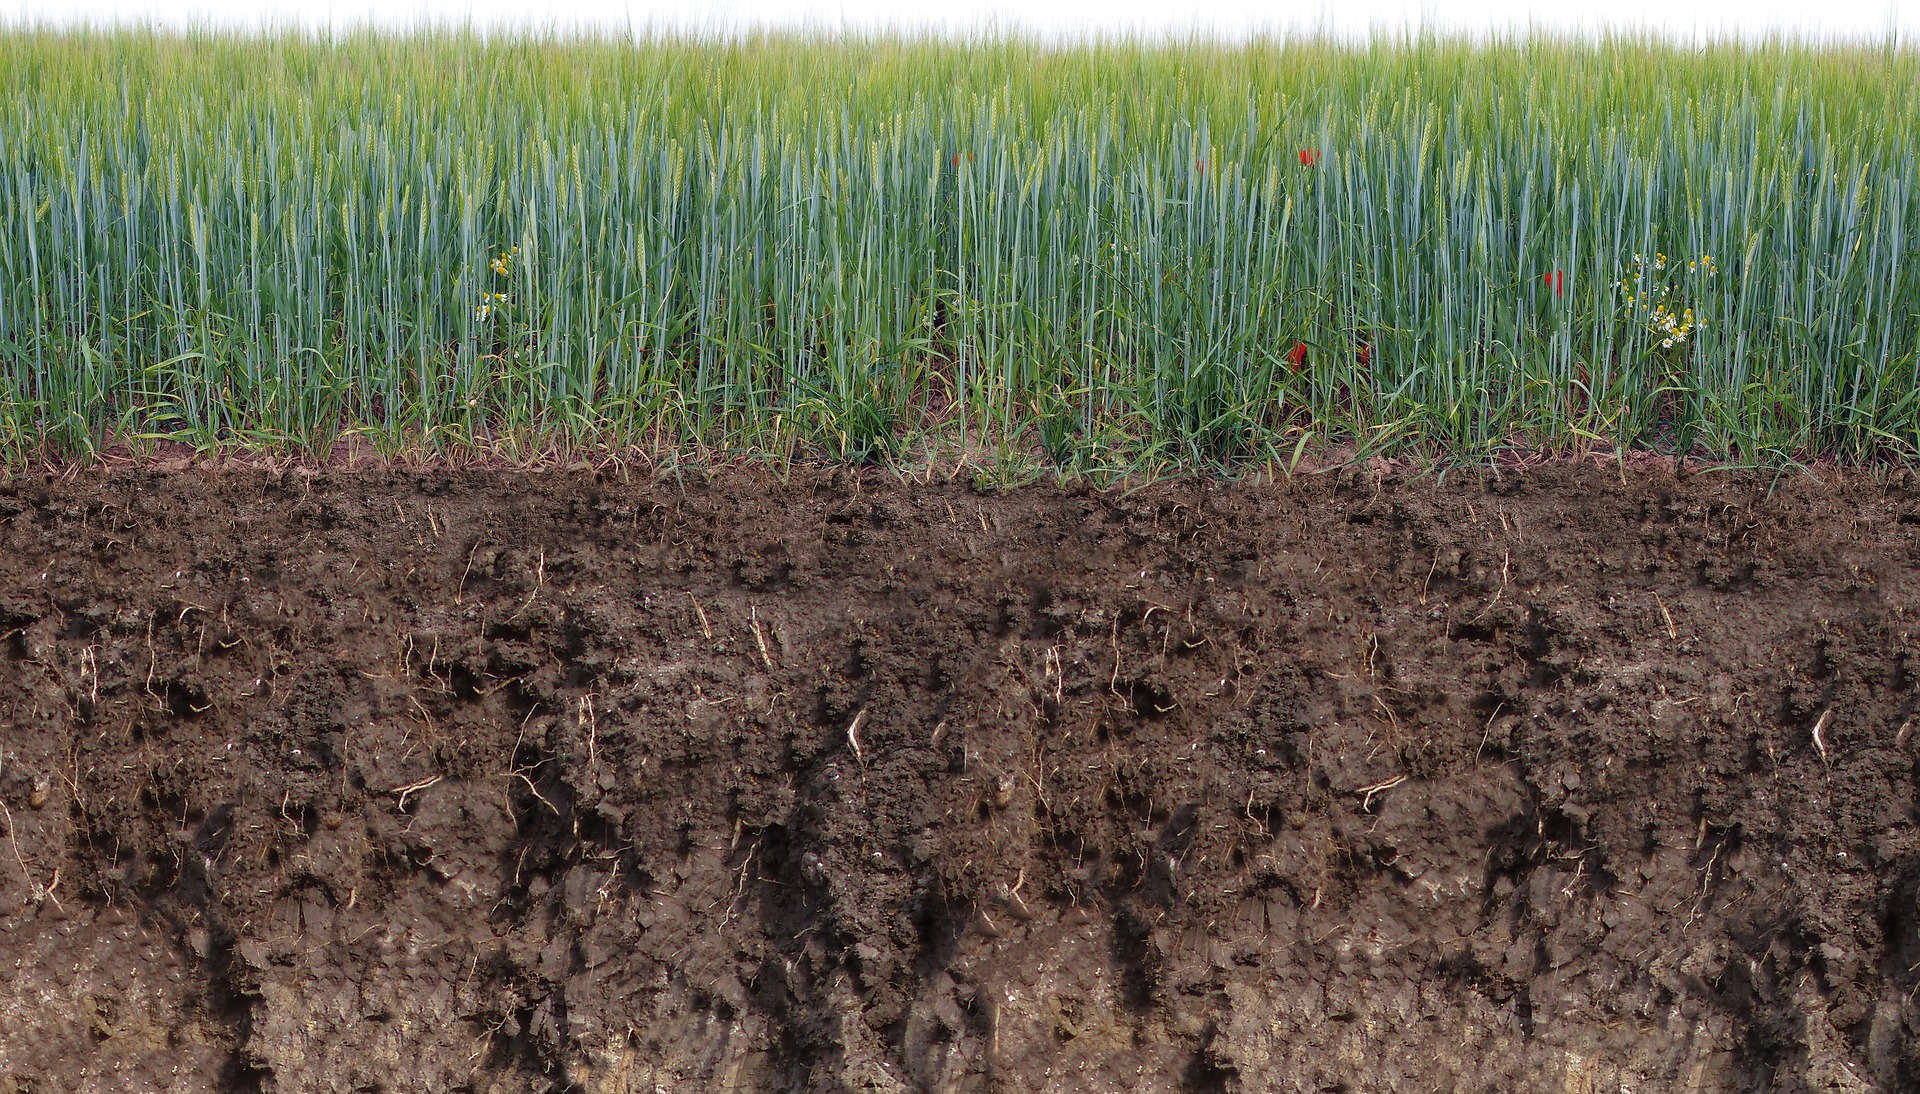 deep soil profile, rich in organic matter, with grain growing on top